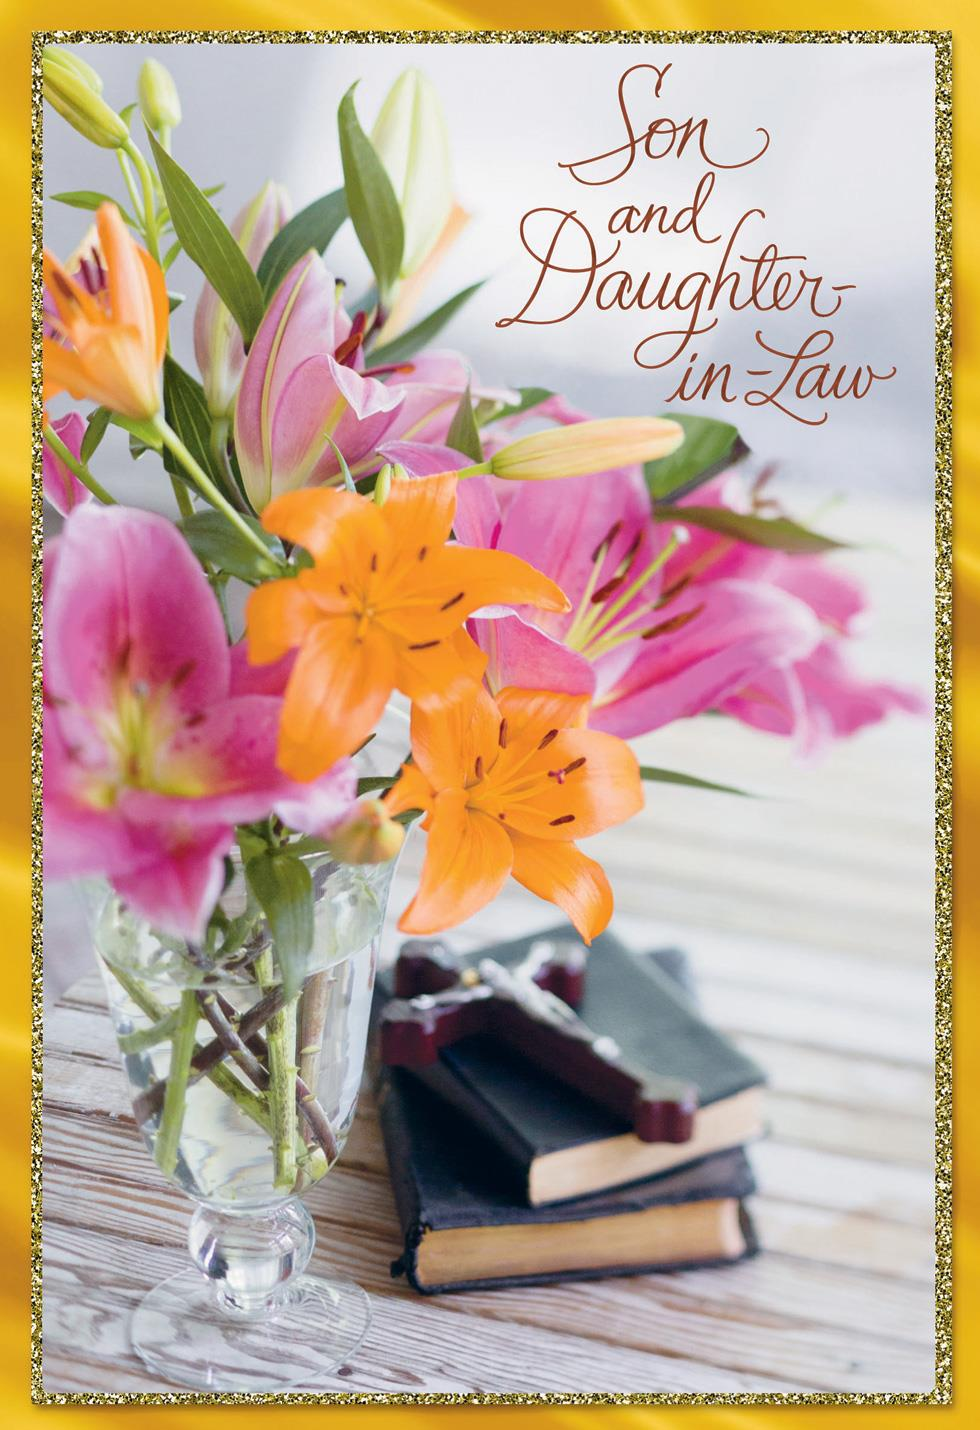 Vase Of Flowers Religious Easter Card For Son And Daughter